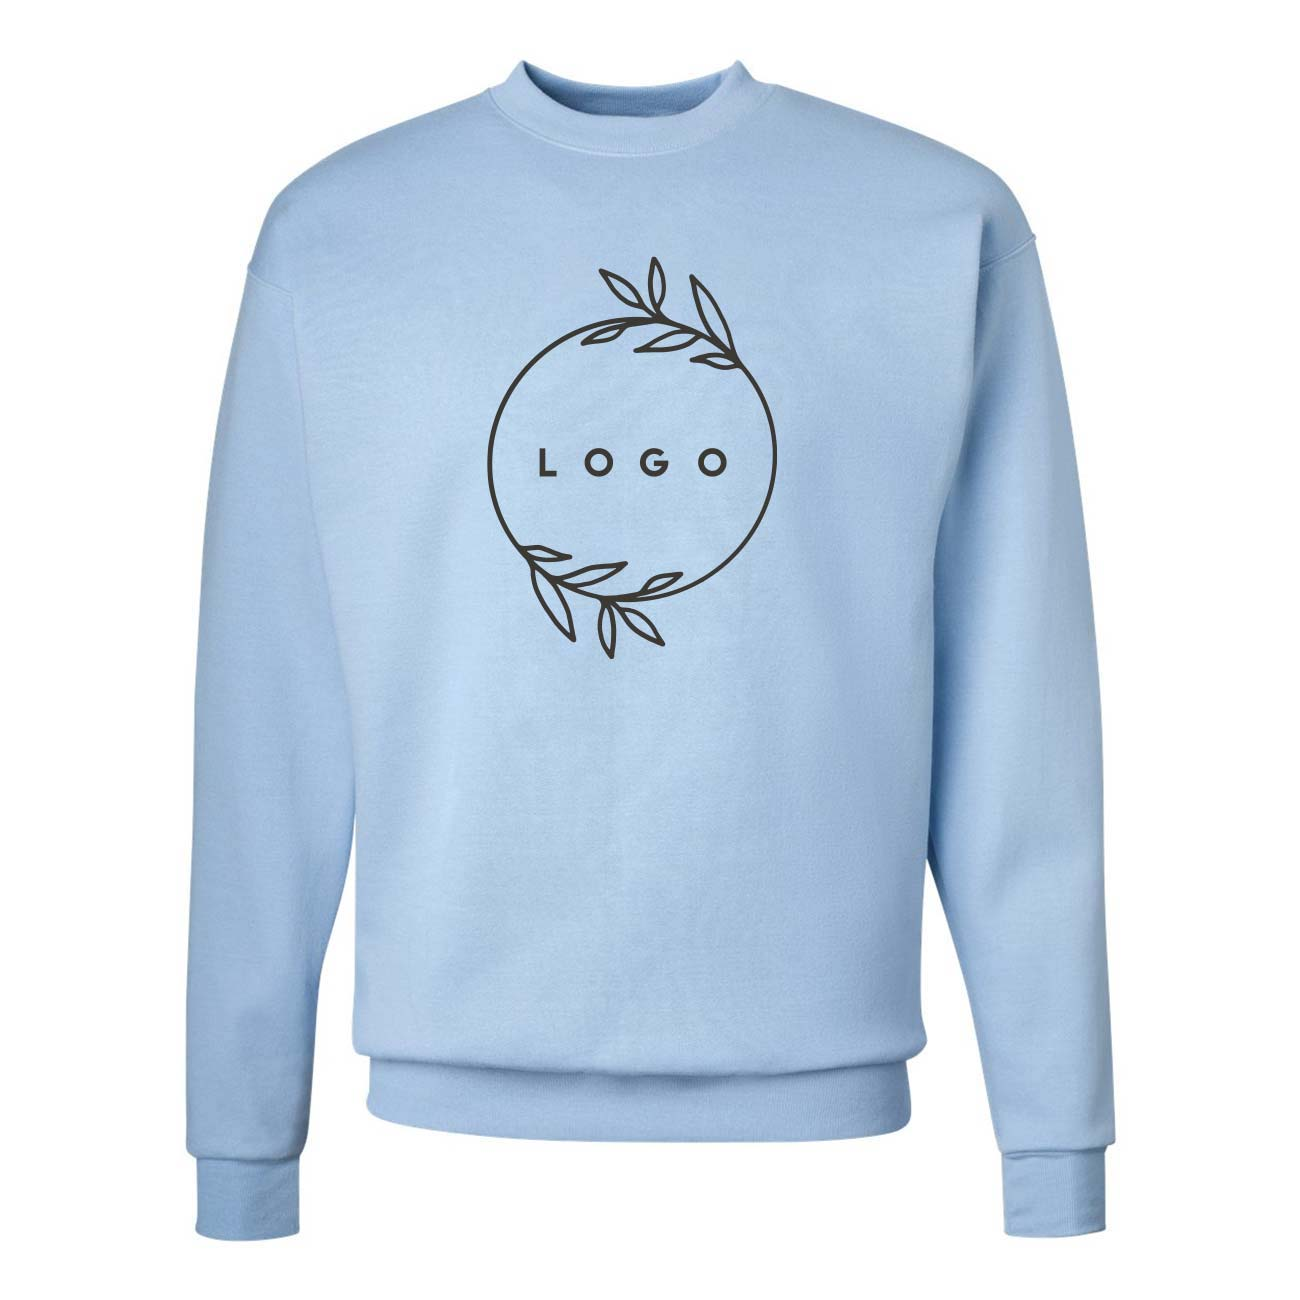 288446 eco crewneck sweatshirt one color screen